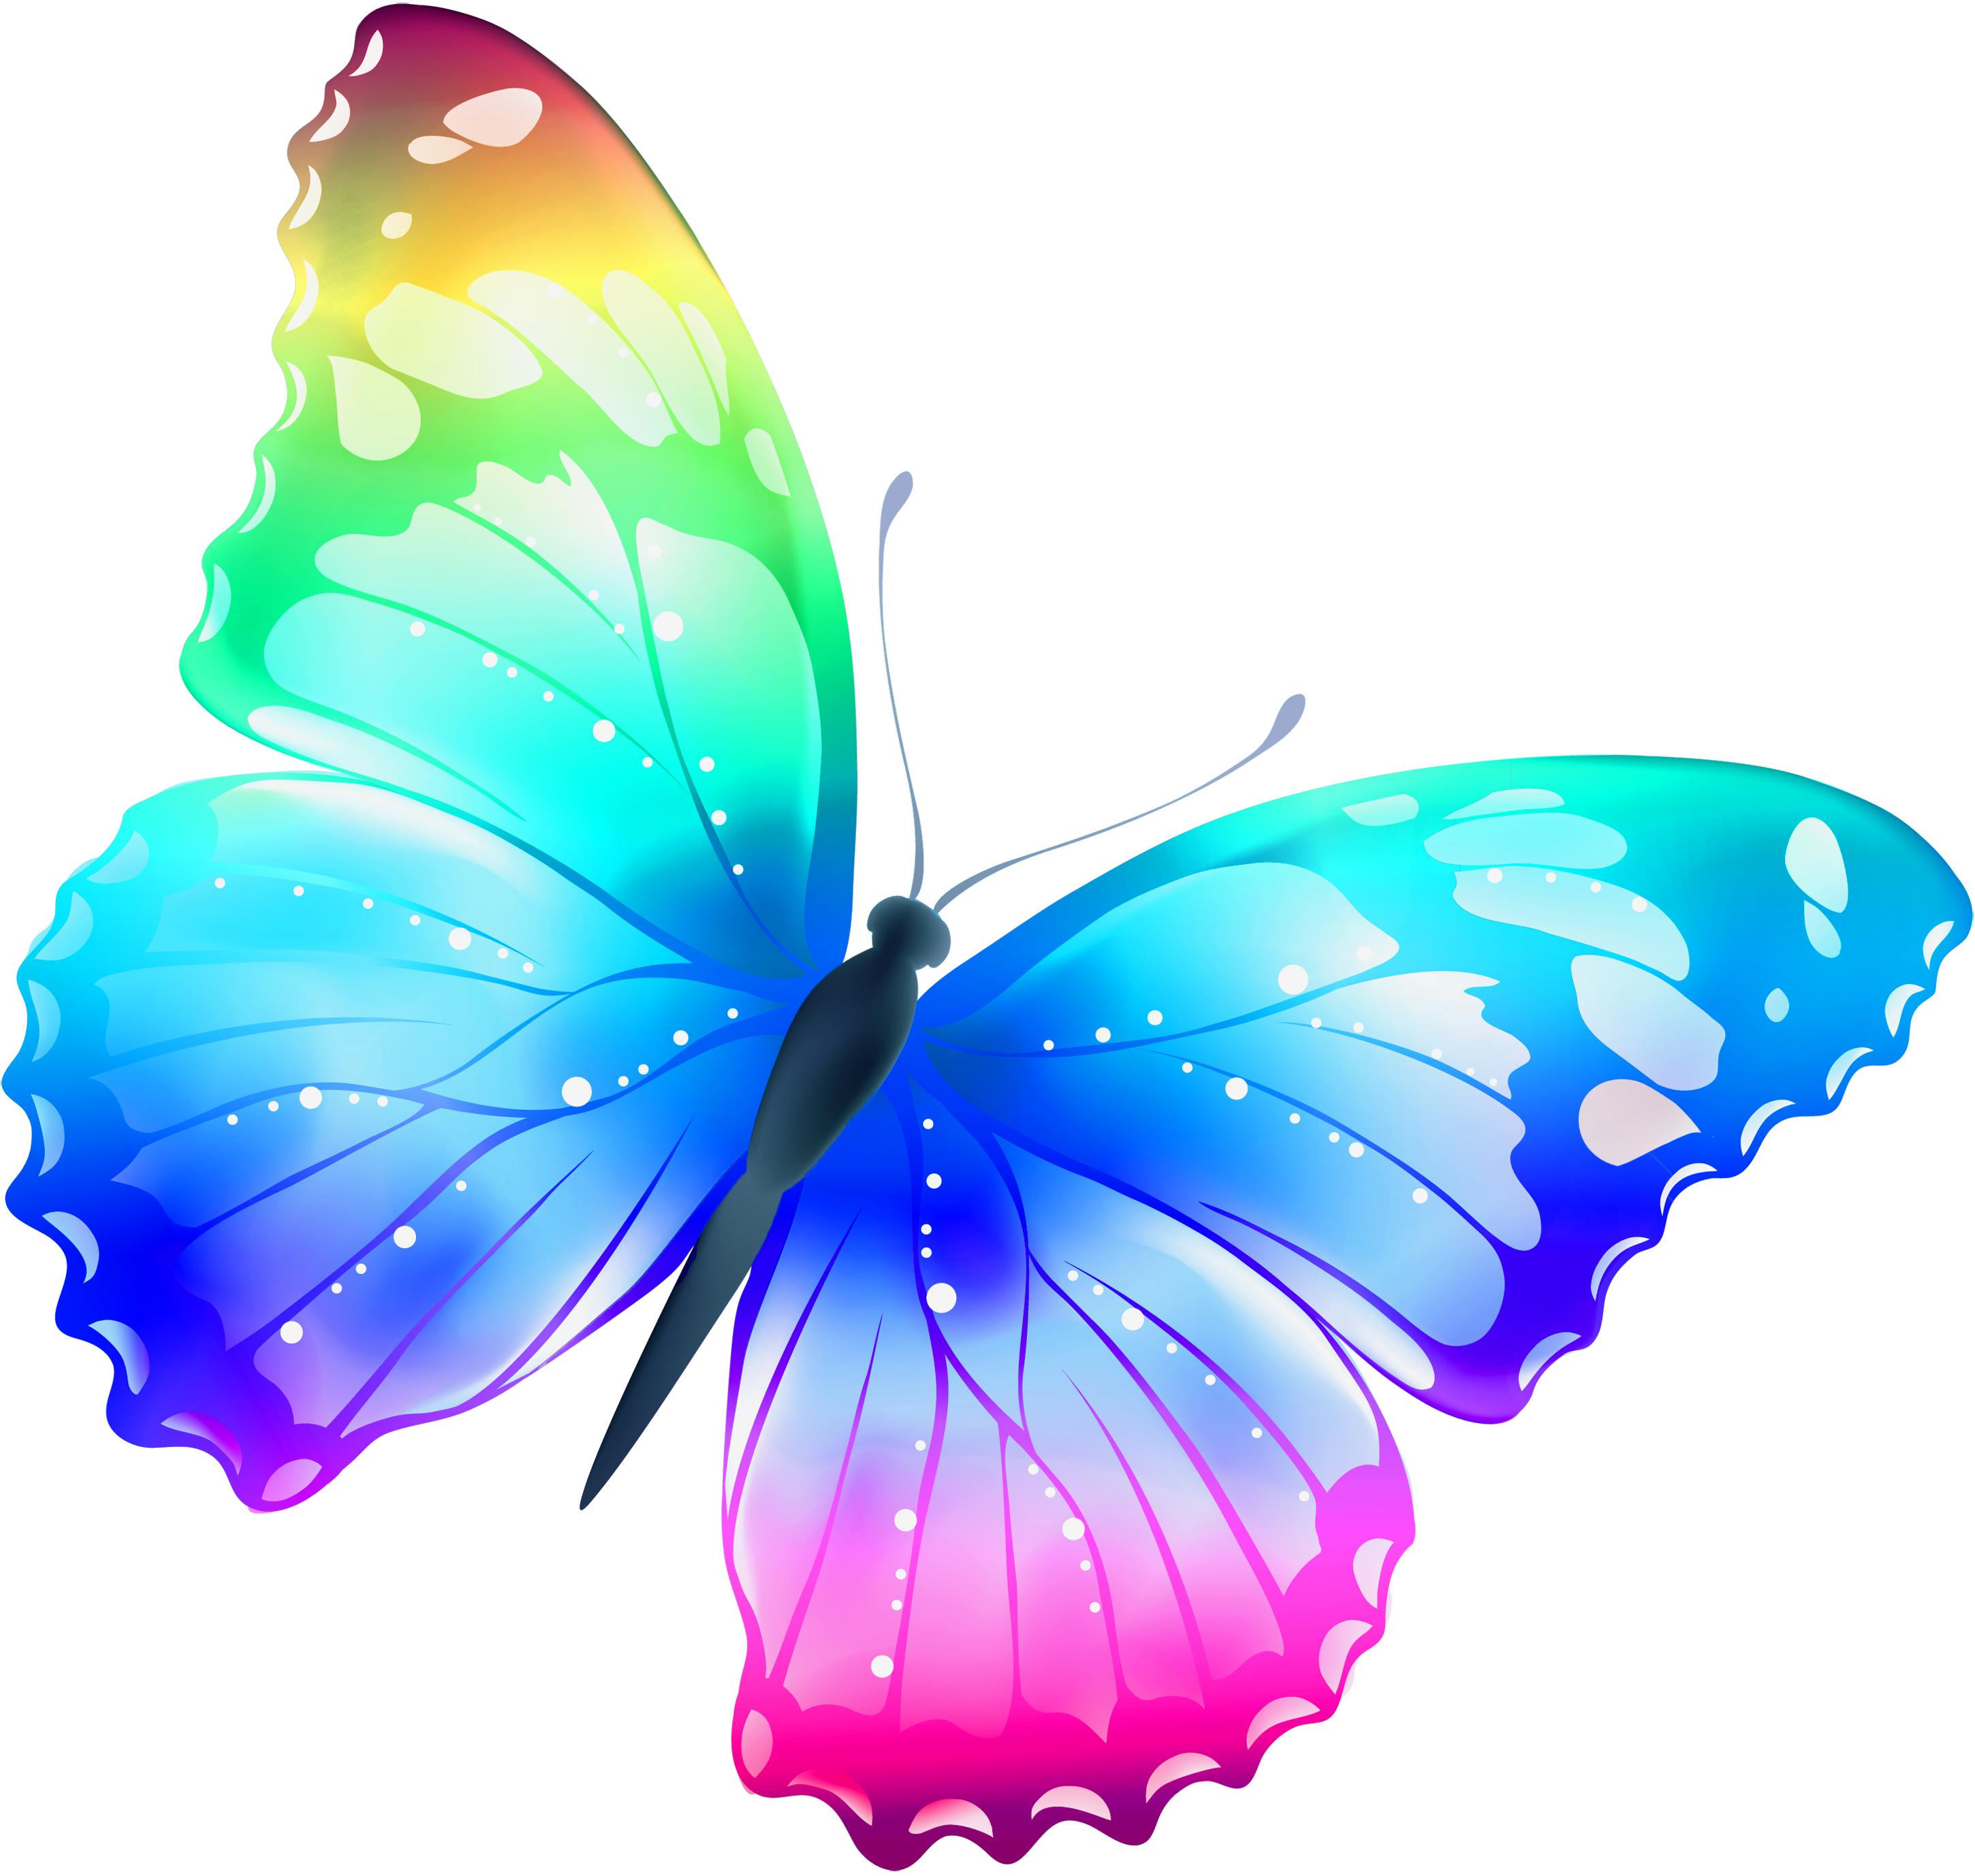 Butterfly images free clipart png black and white stock Butterfly Pictures Free | Free Download Clip Art | Free Clip Art ... png black and white stock